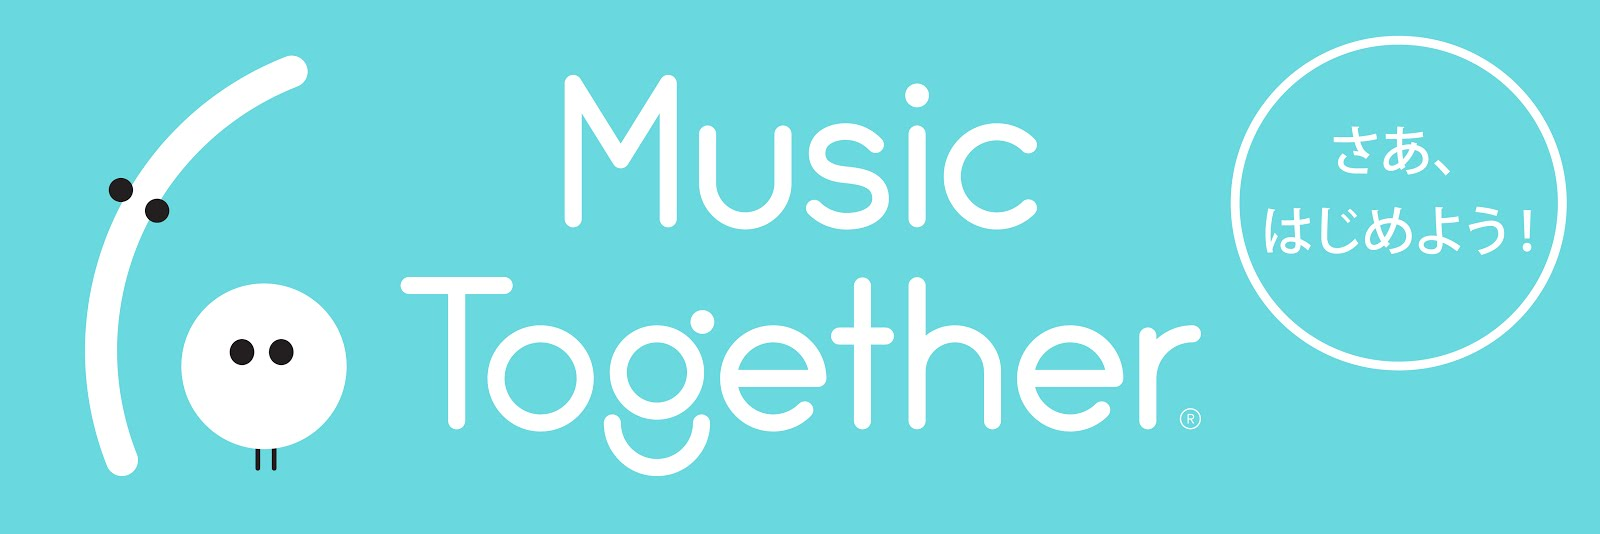 Music Together World 公式ブログ